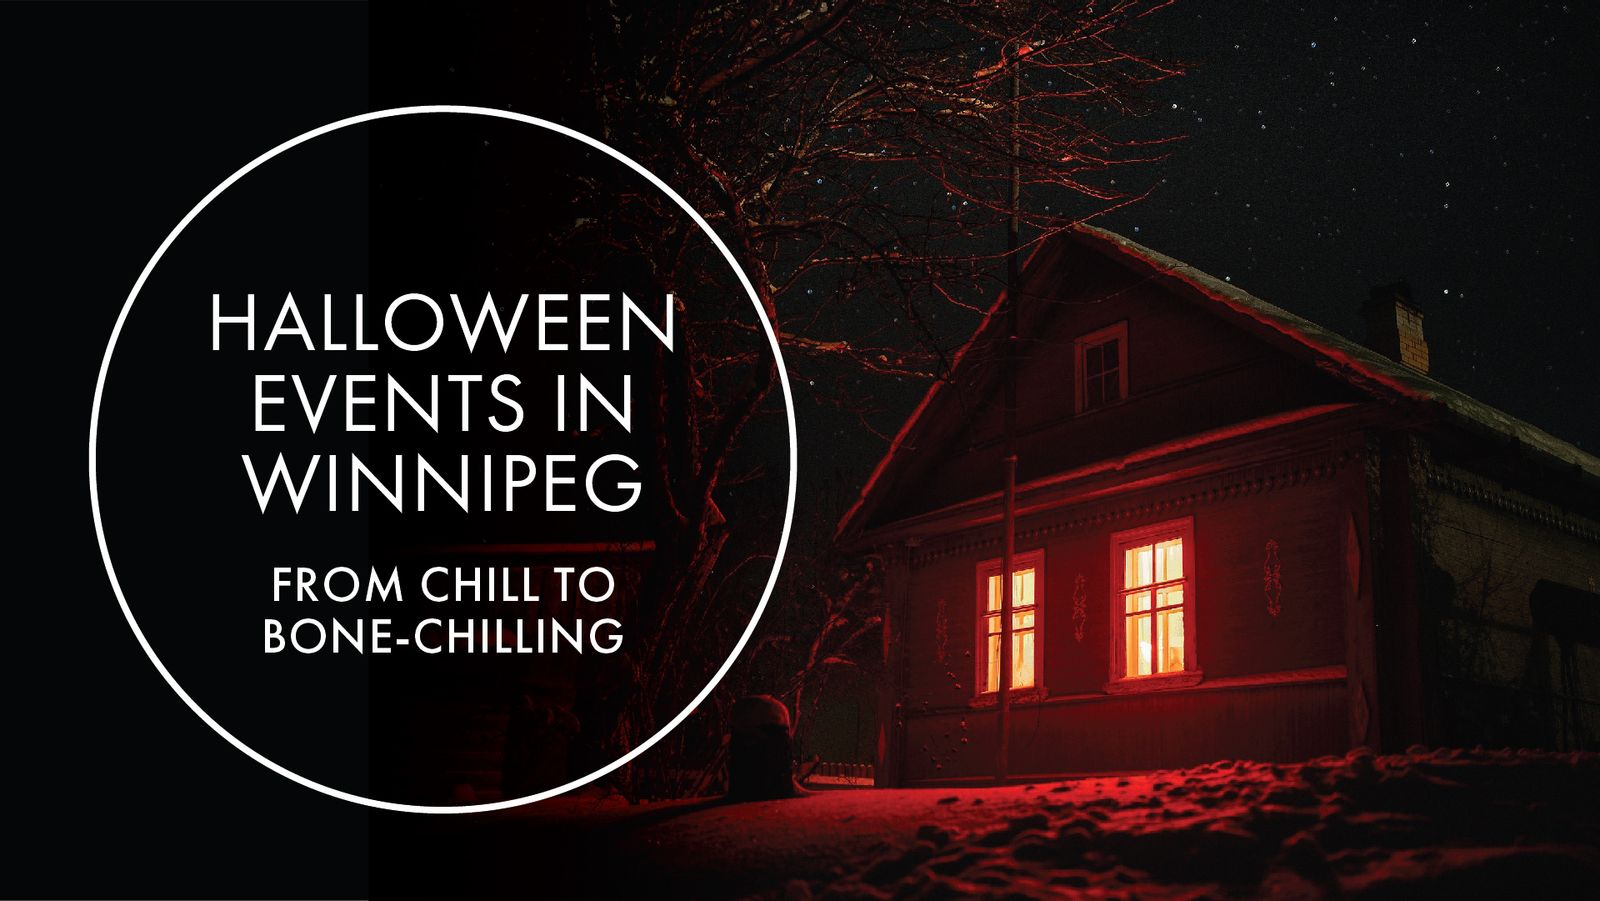 Halloween Events in Winnipeg: From Chill to Bone-Chilling!